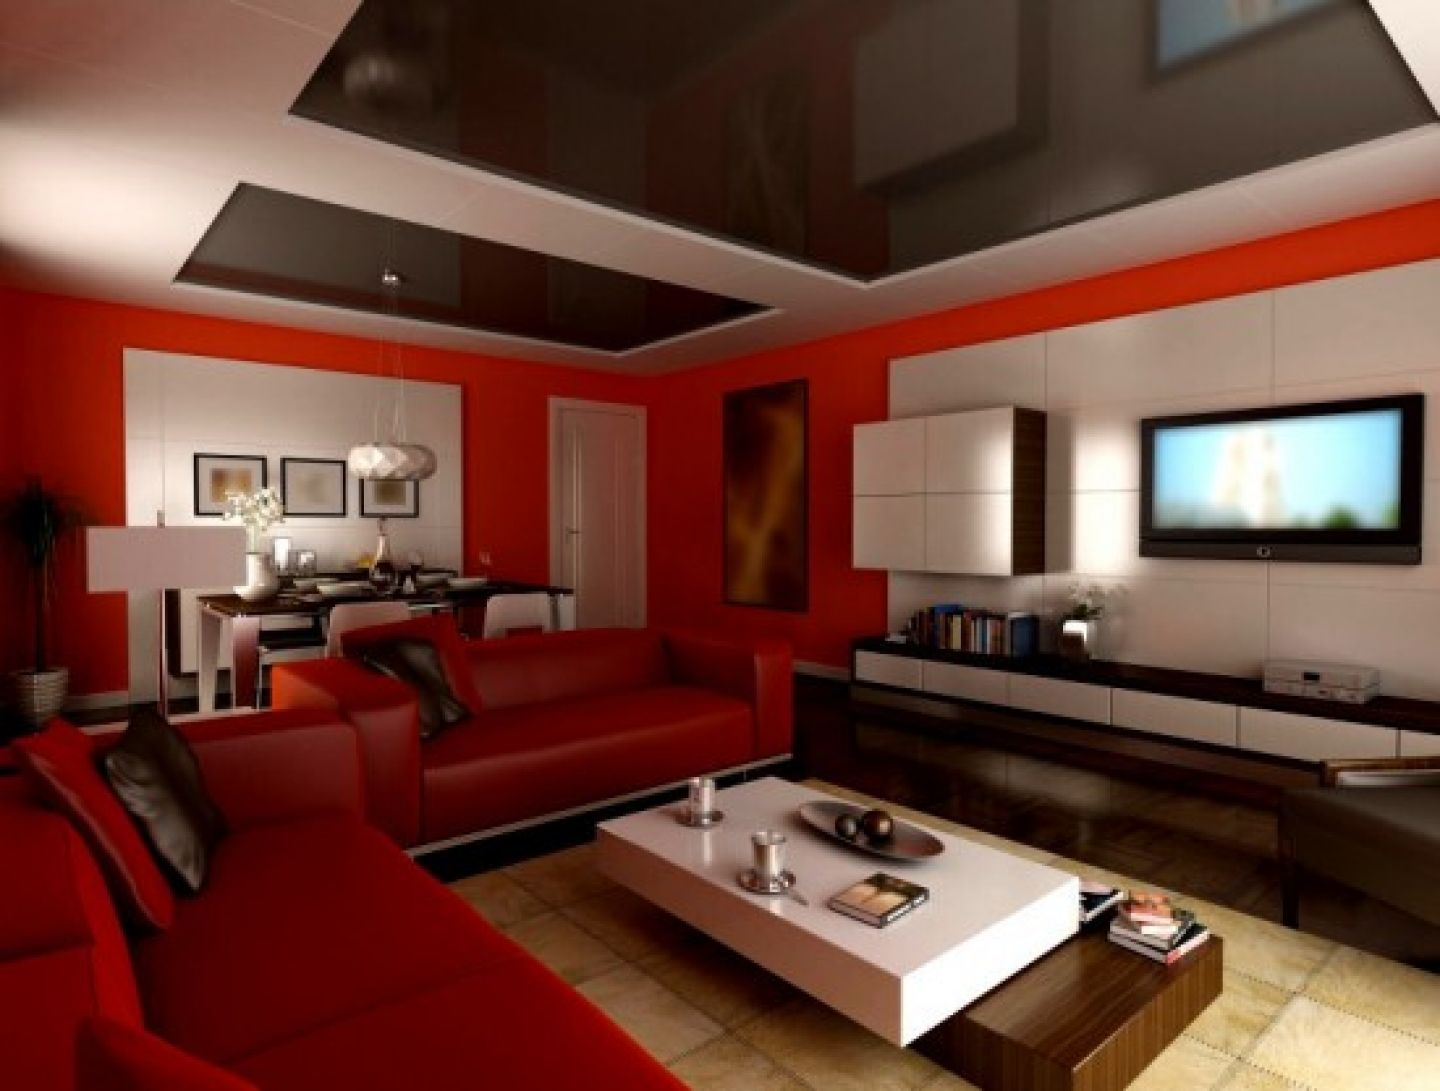 Interior paint color schemes living room - Design Living Room Paint Colors Ideas Modern Red White Living Room With Red Sectional Sofa And